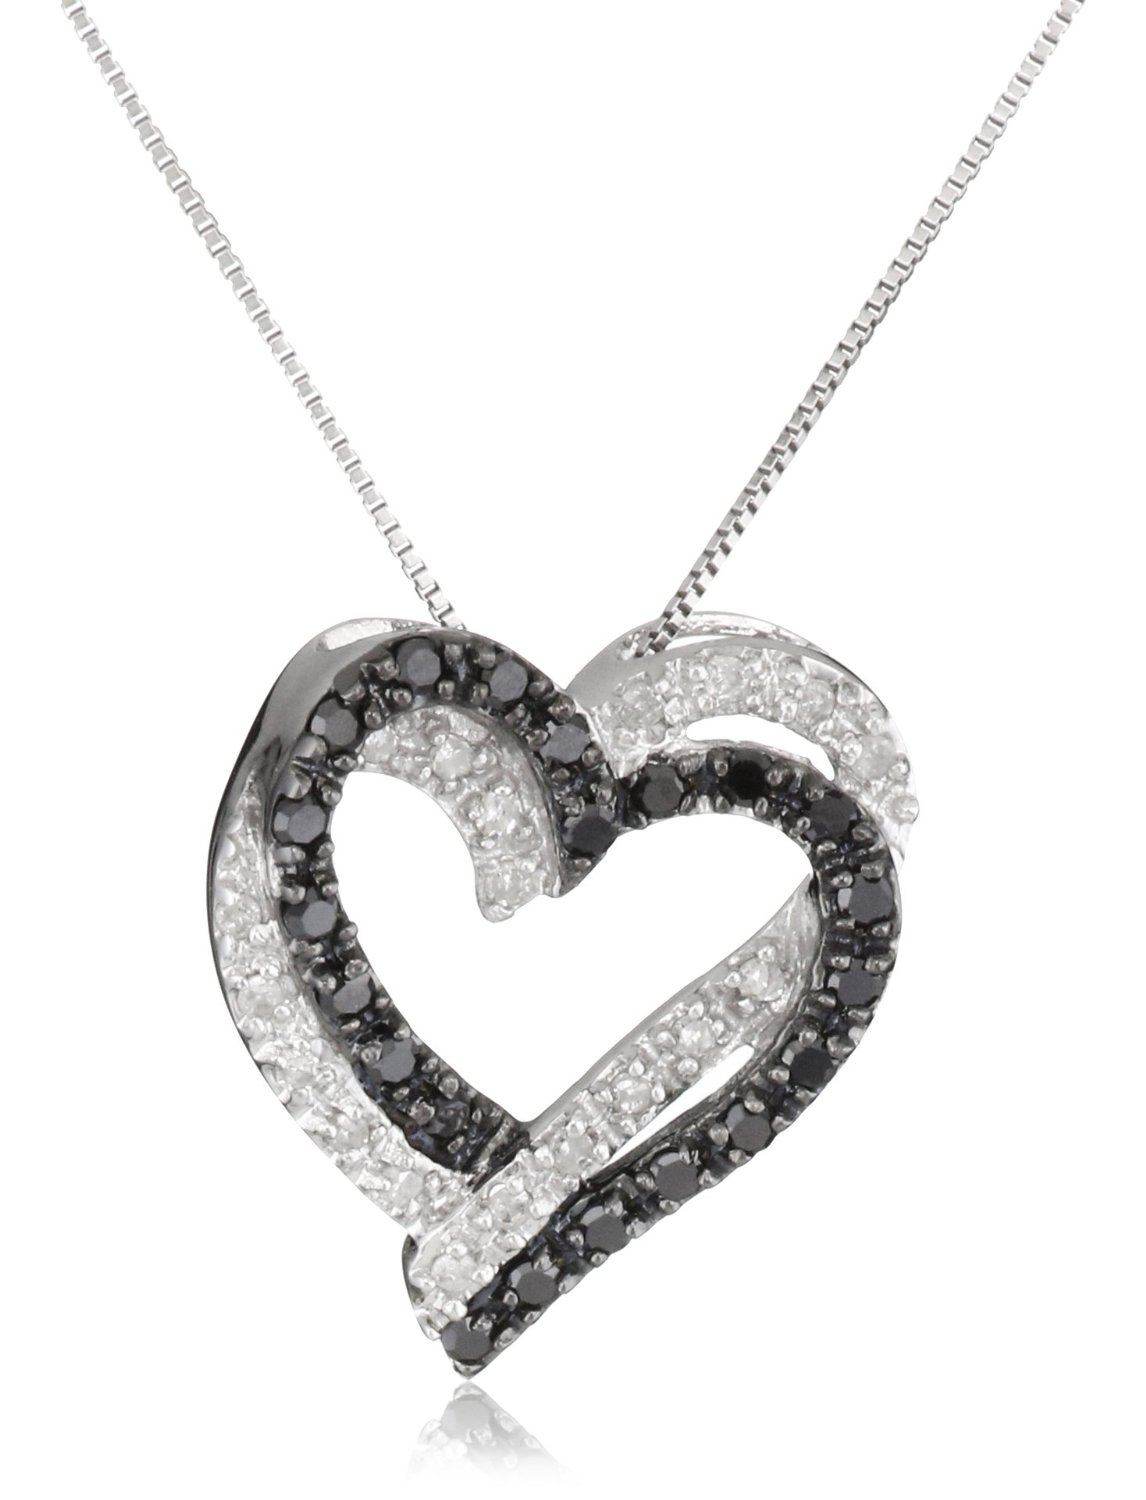 Heart pendant necklace in 14k white gold from gemone diamonds make offer aloadofball Choice Image